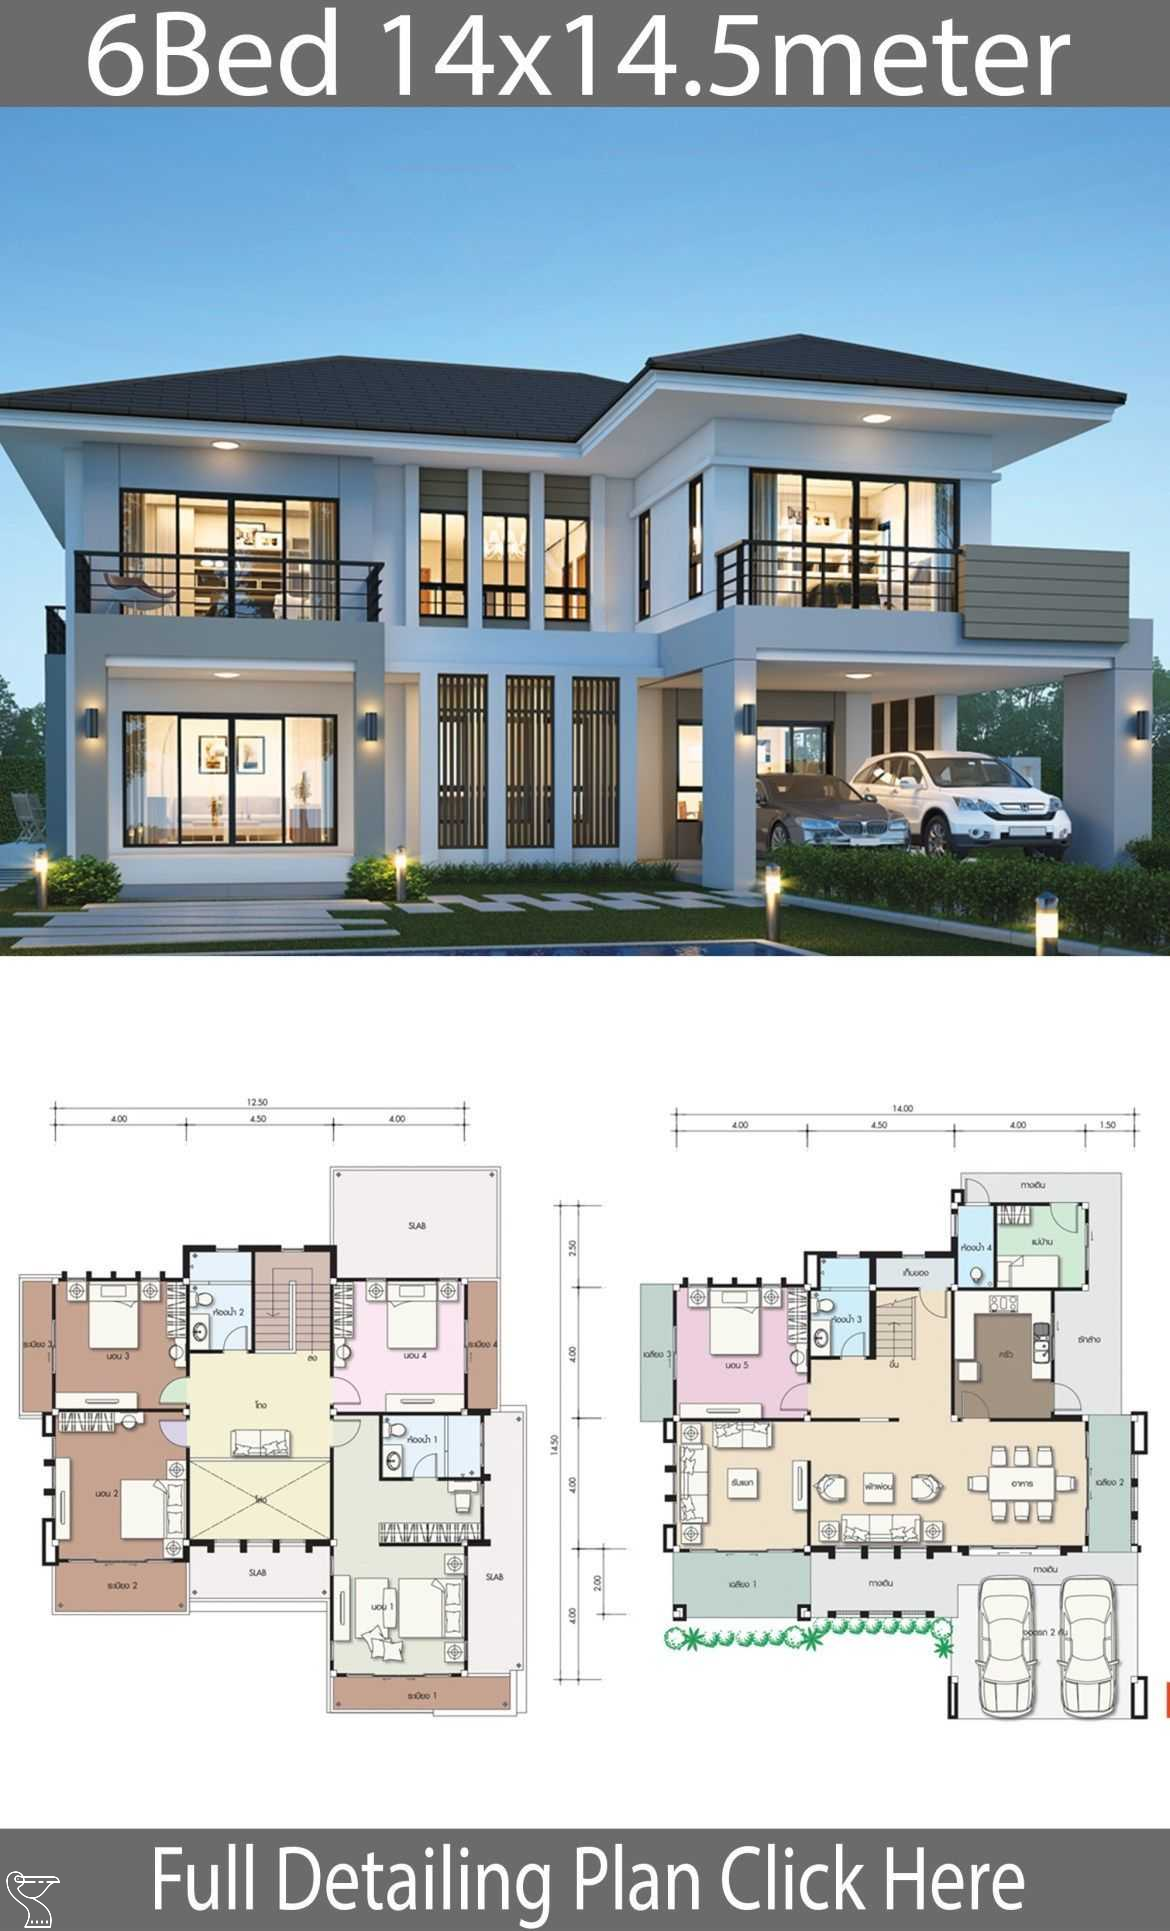 efozon - home decor in 2020 | Beautiful house plans, House layout plans,  House designs exterior